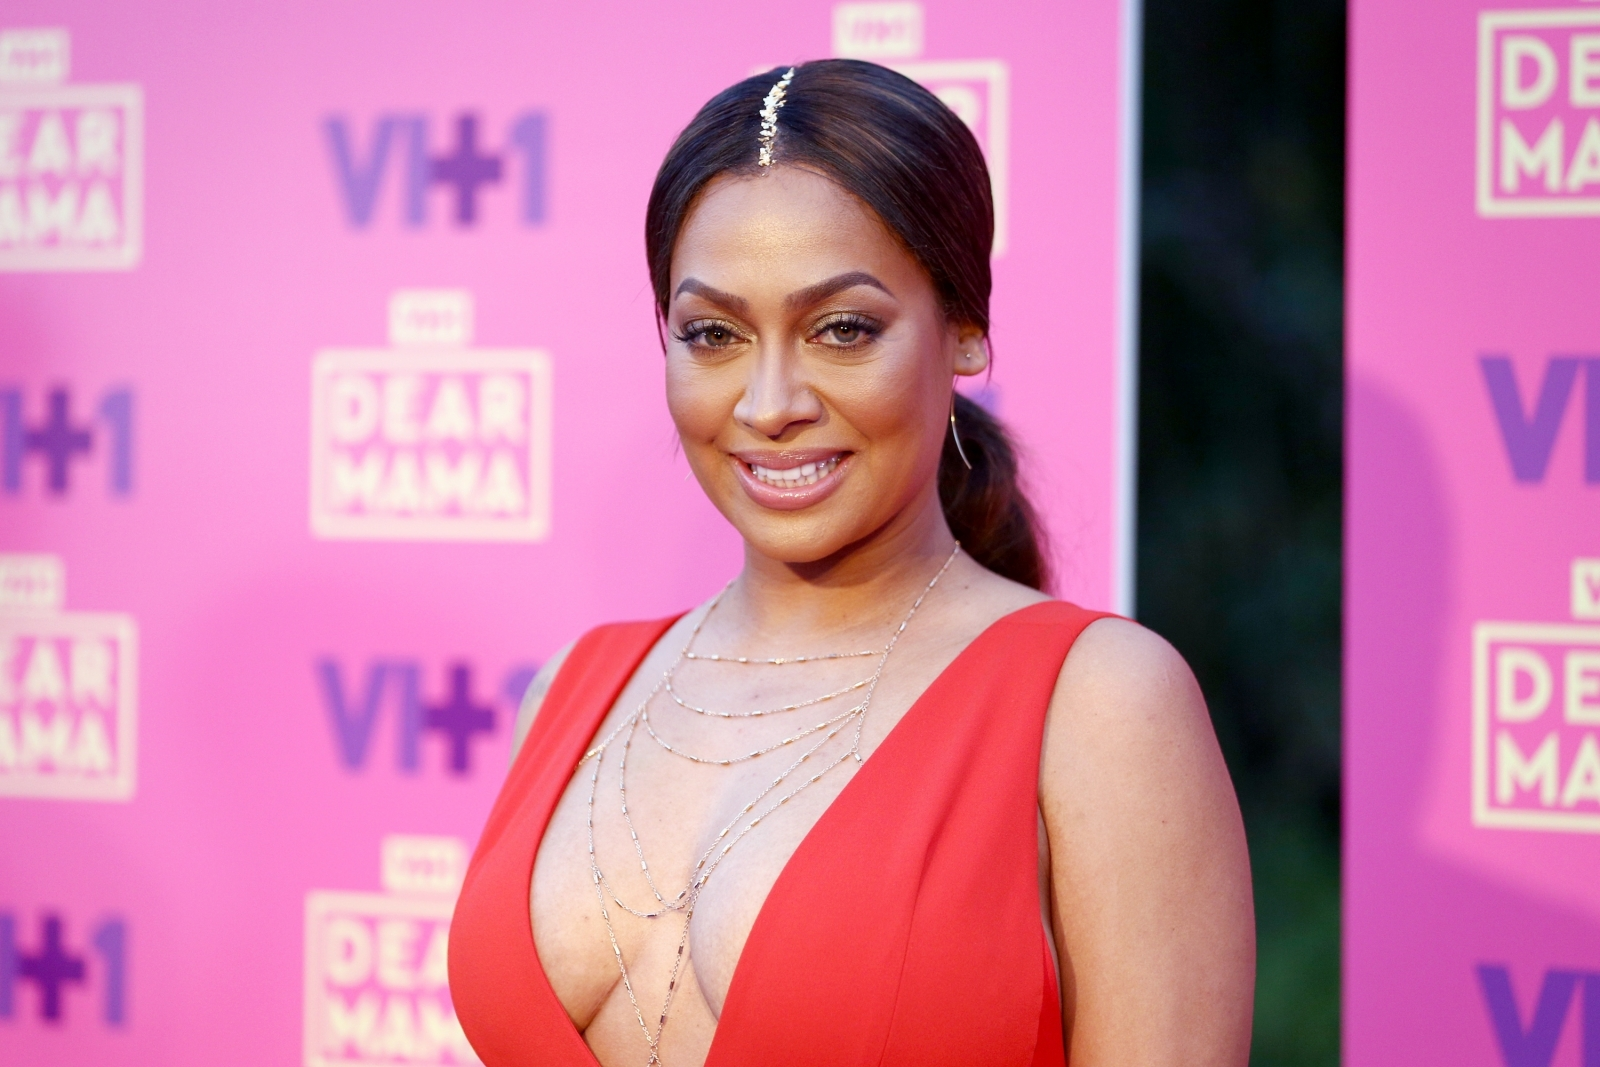 Lala Anthony